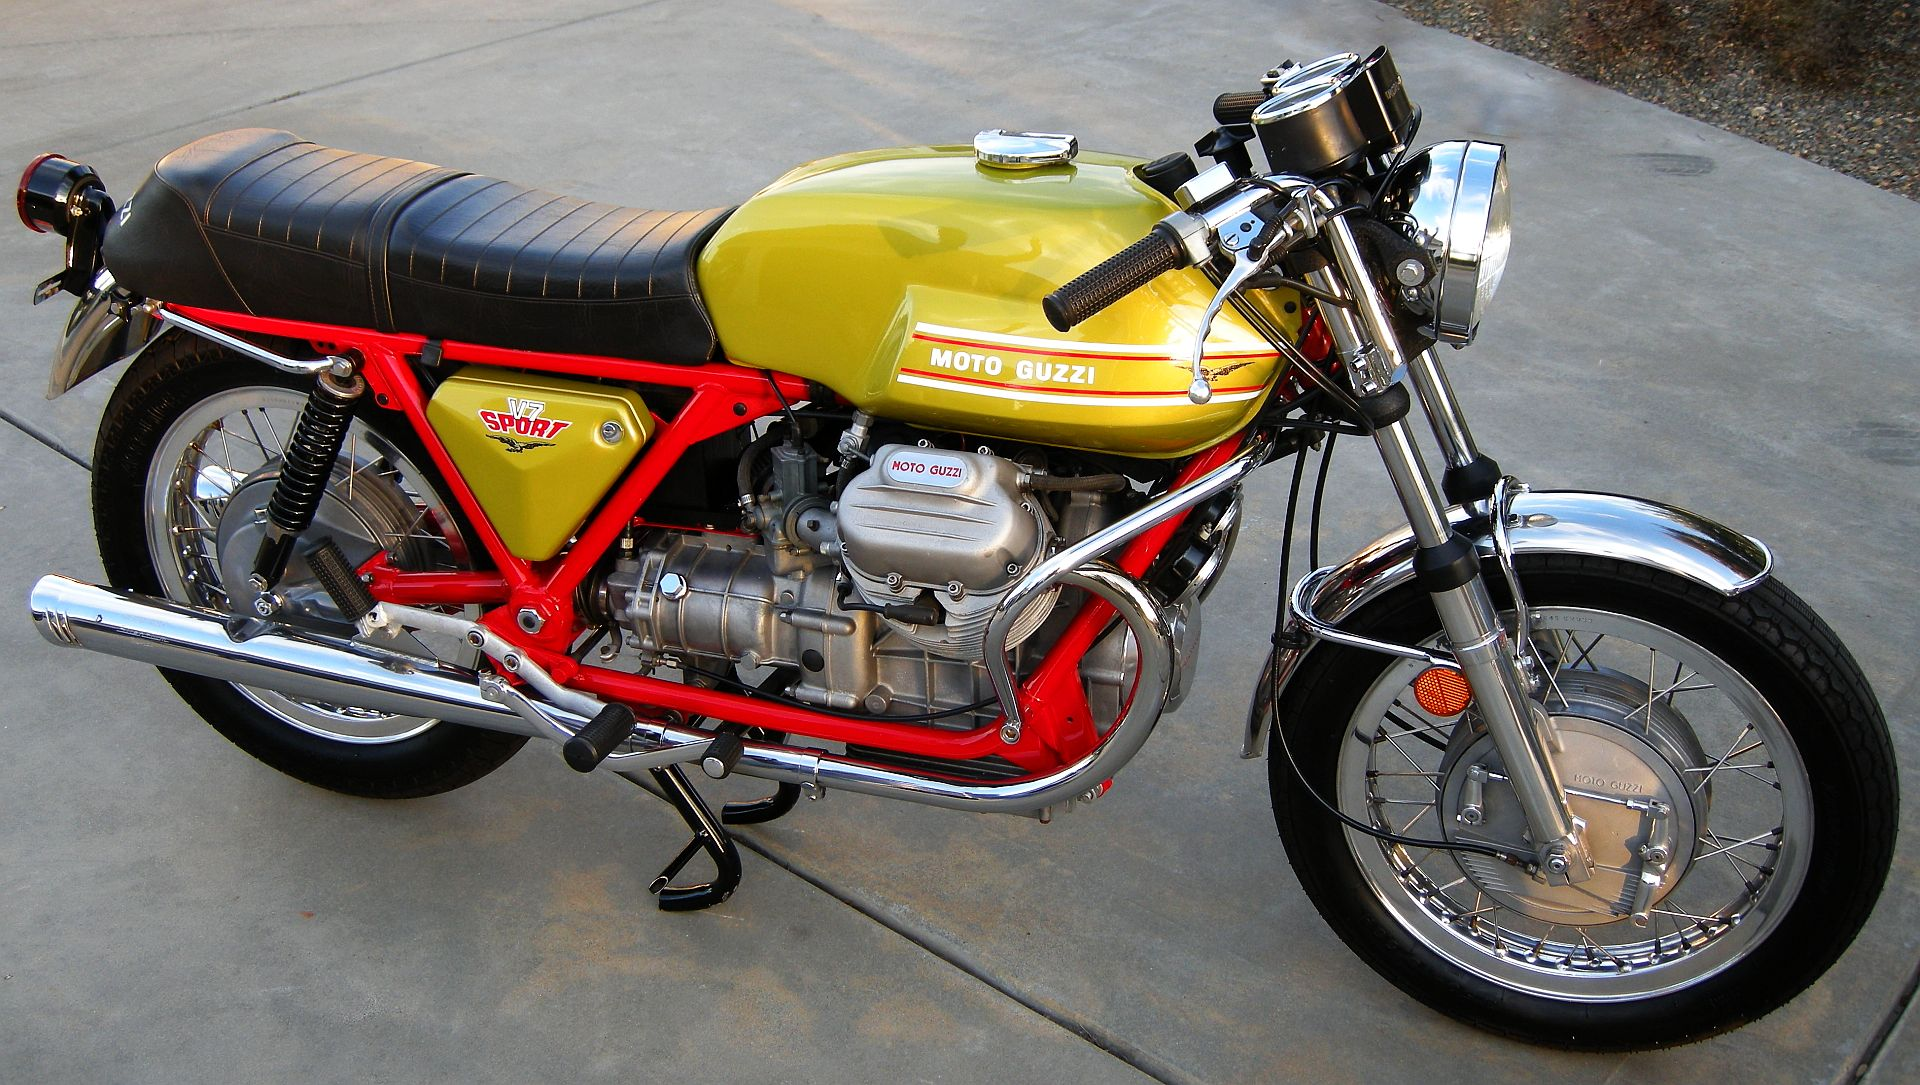 MV Agusta 750 GT 1972 images #113447